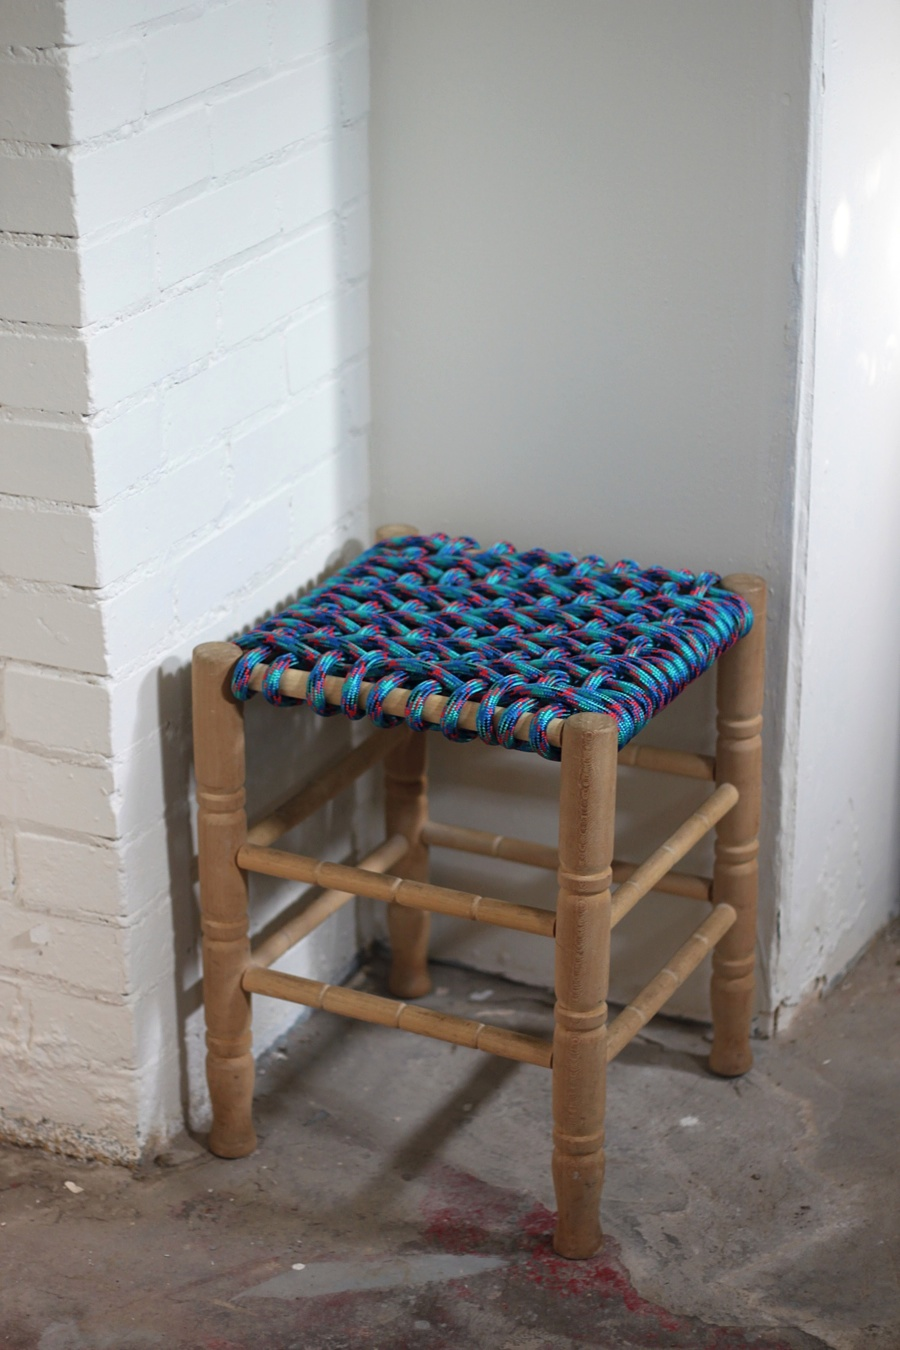 Amazing 40 Projects Just For Fun Woven Stool Diy Smile And Wave Ibusinesslaw Wood Chair Design Ideas Ibusinesslaworg